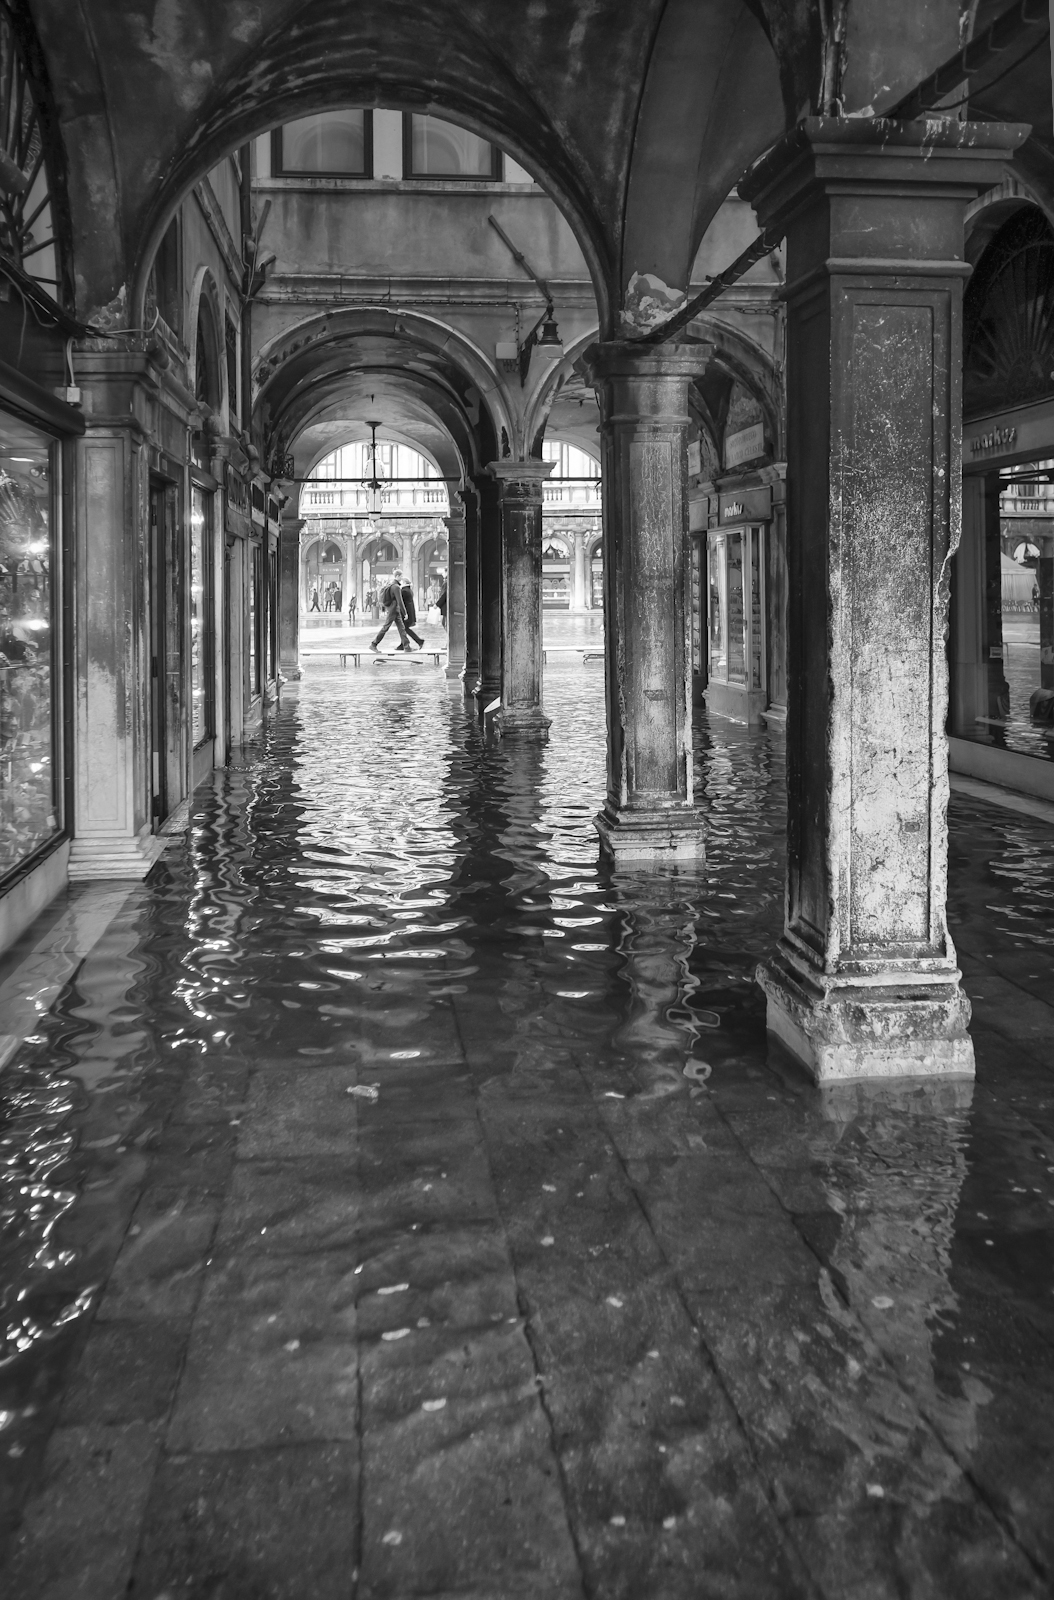 Calle Cavalletto Acqua Alta by archipirata